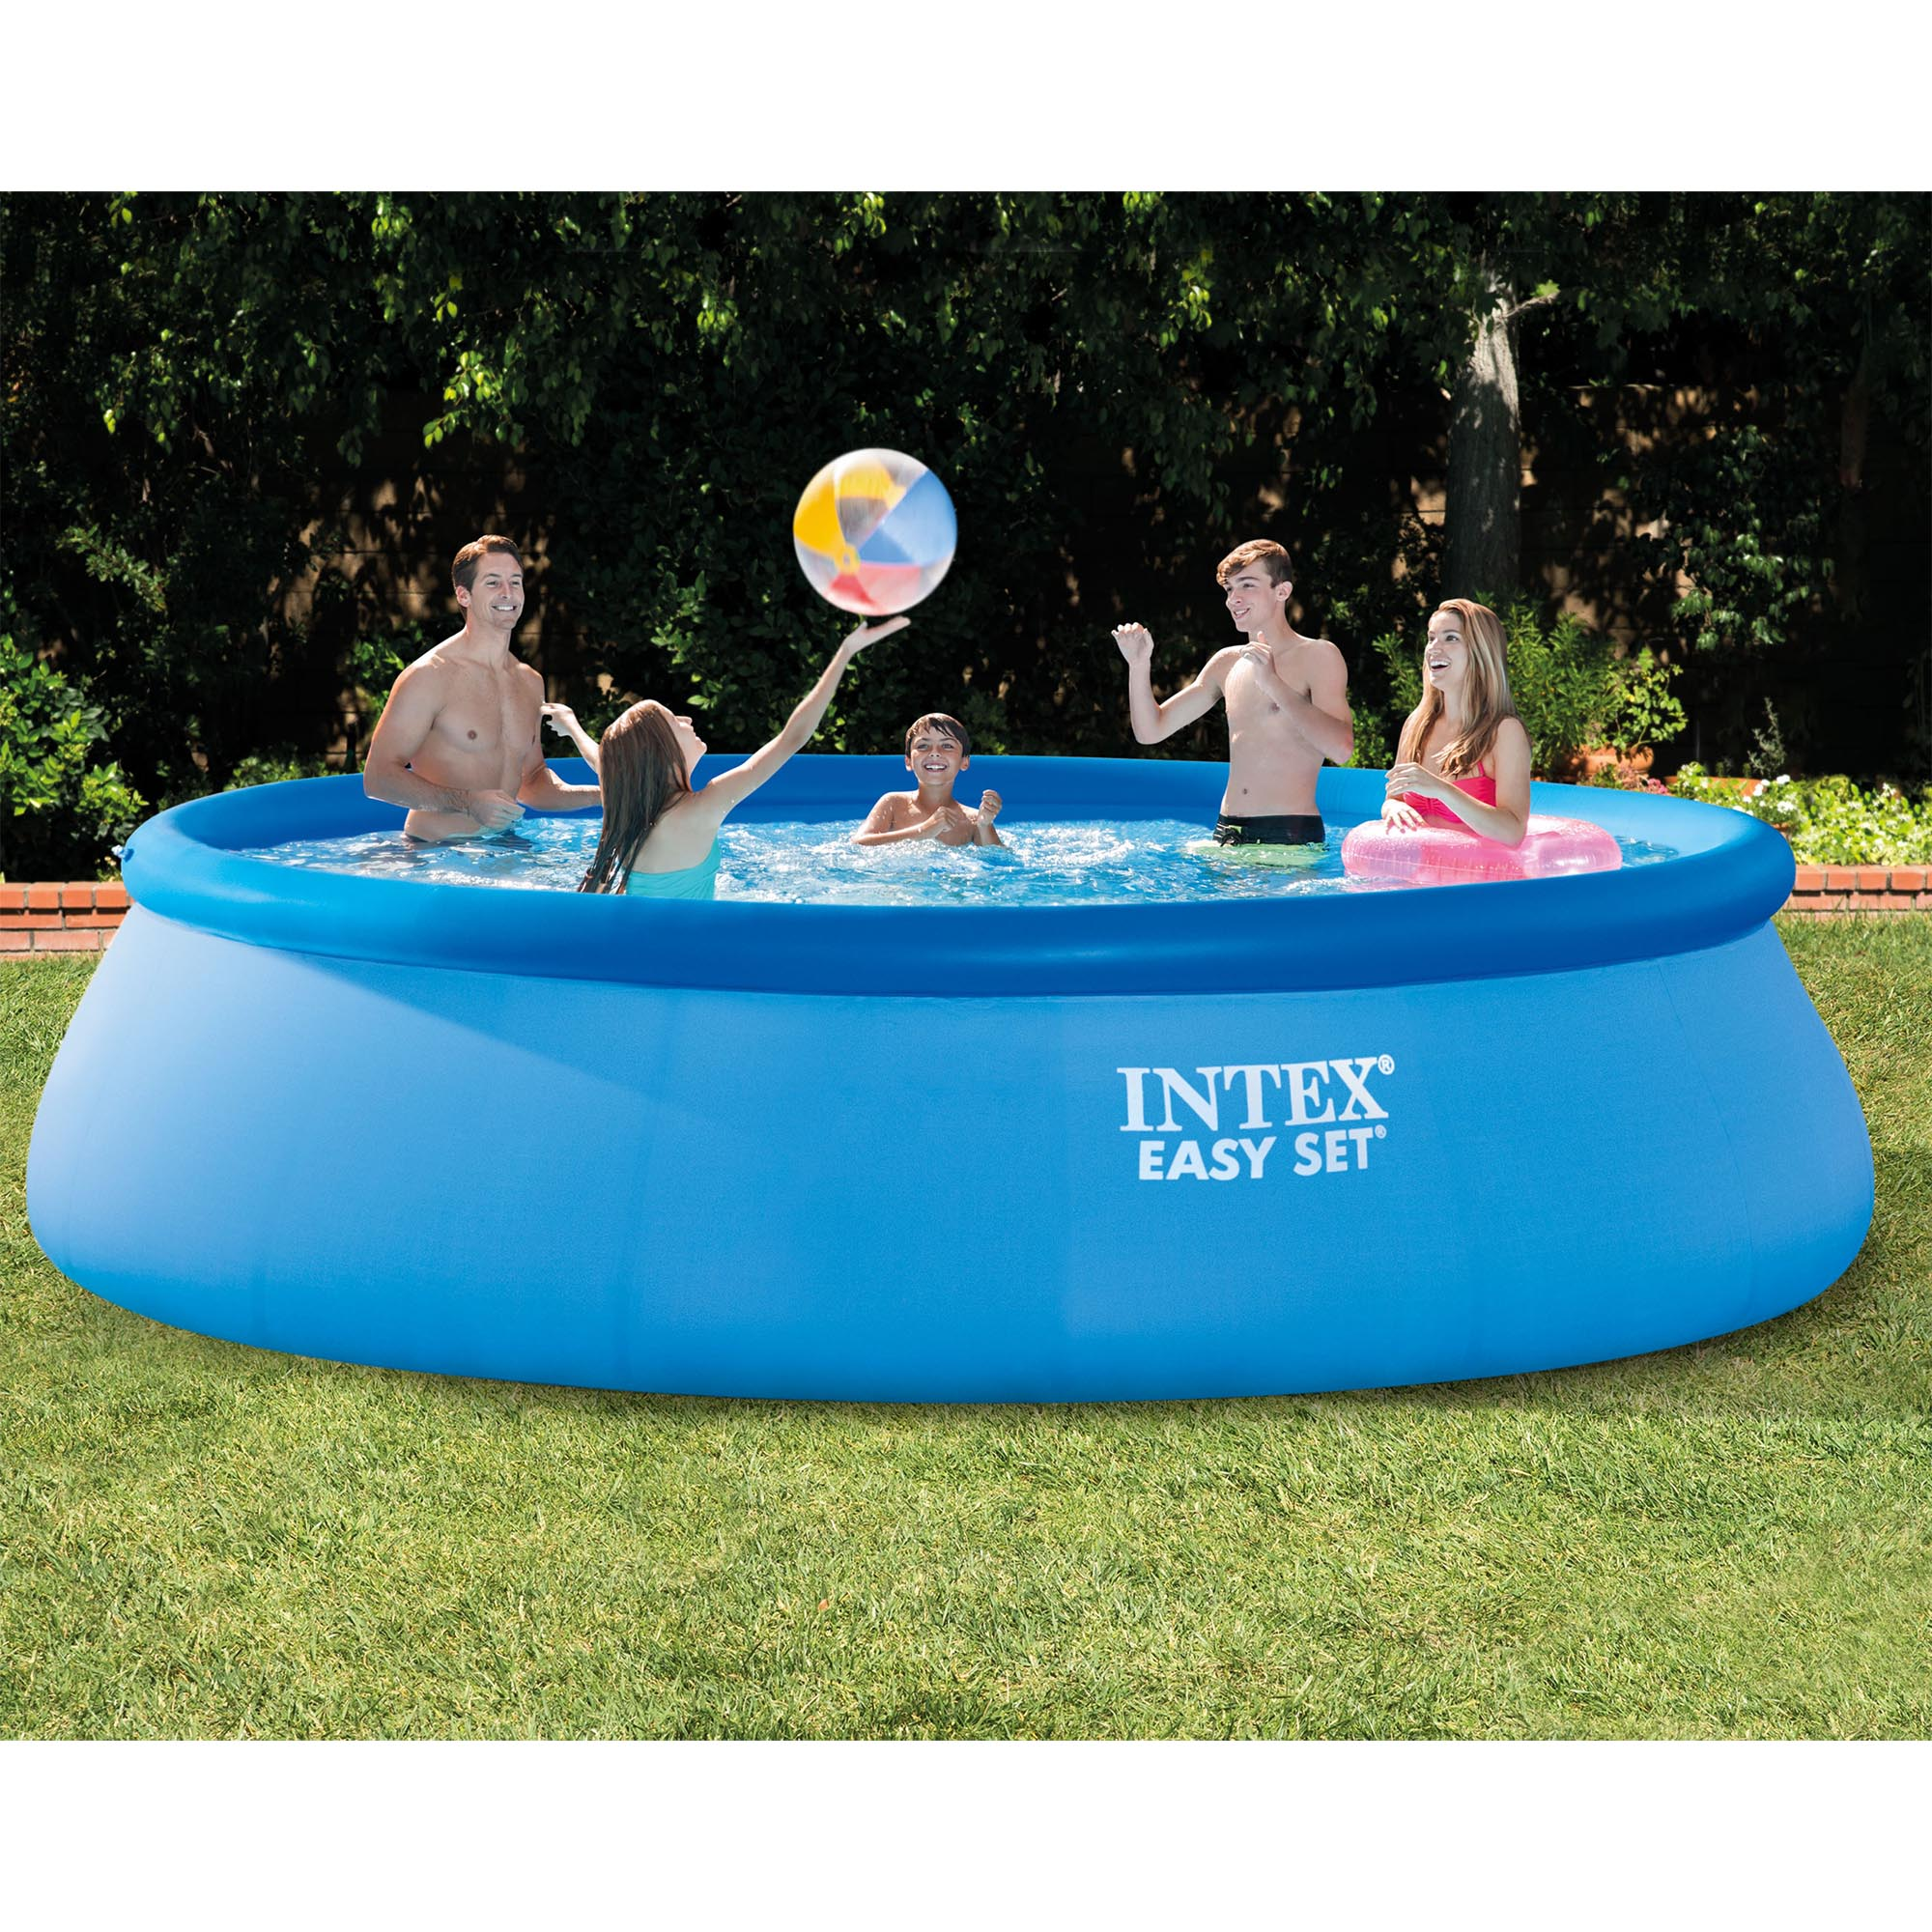 "Intex 15' x 42"" Inflatable Easy Set Above Ground Swimming Pool w  Ladder & Pump by Intex Development"